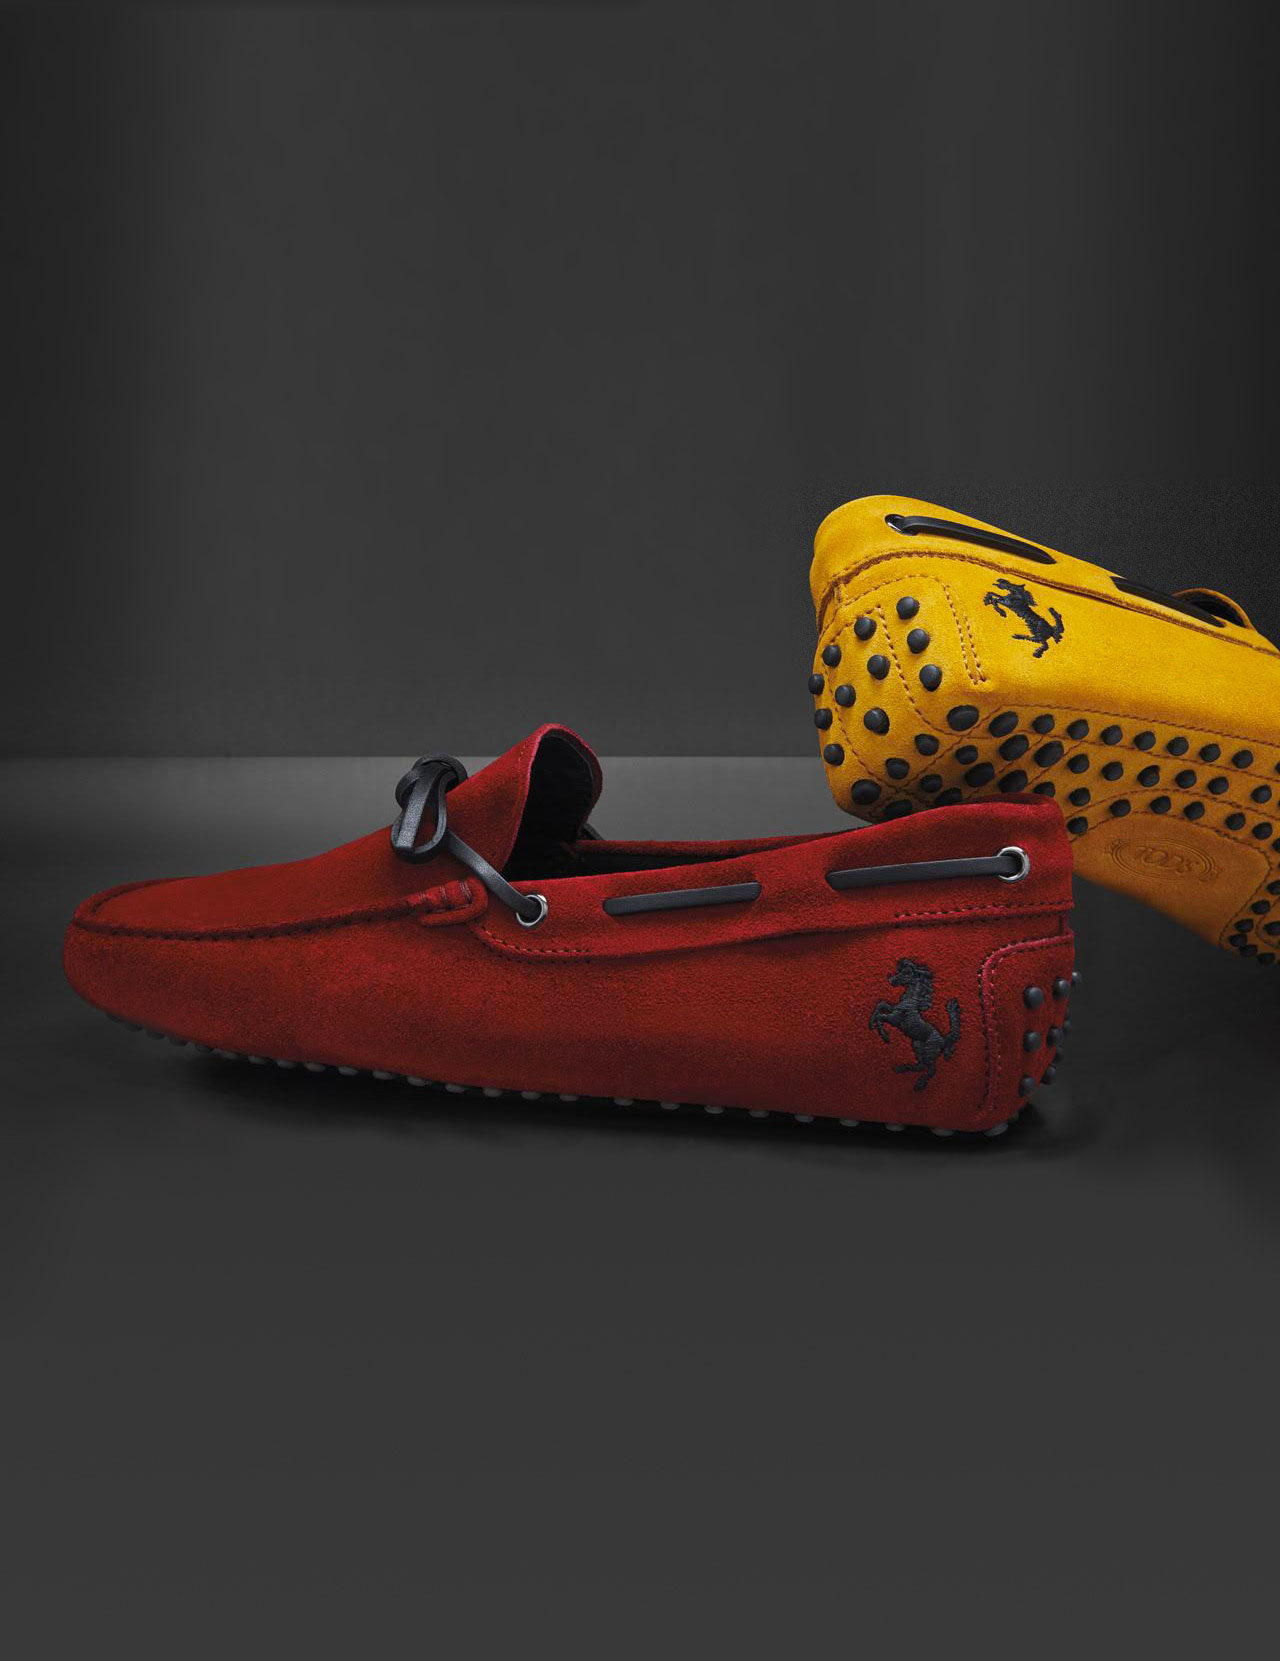 scooby for dsc home tod s bazar gommin shoes ferrari new tods product morsetto doo